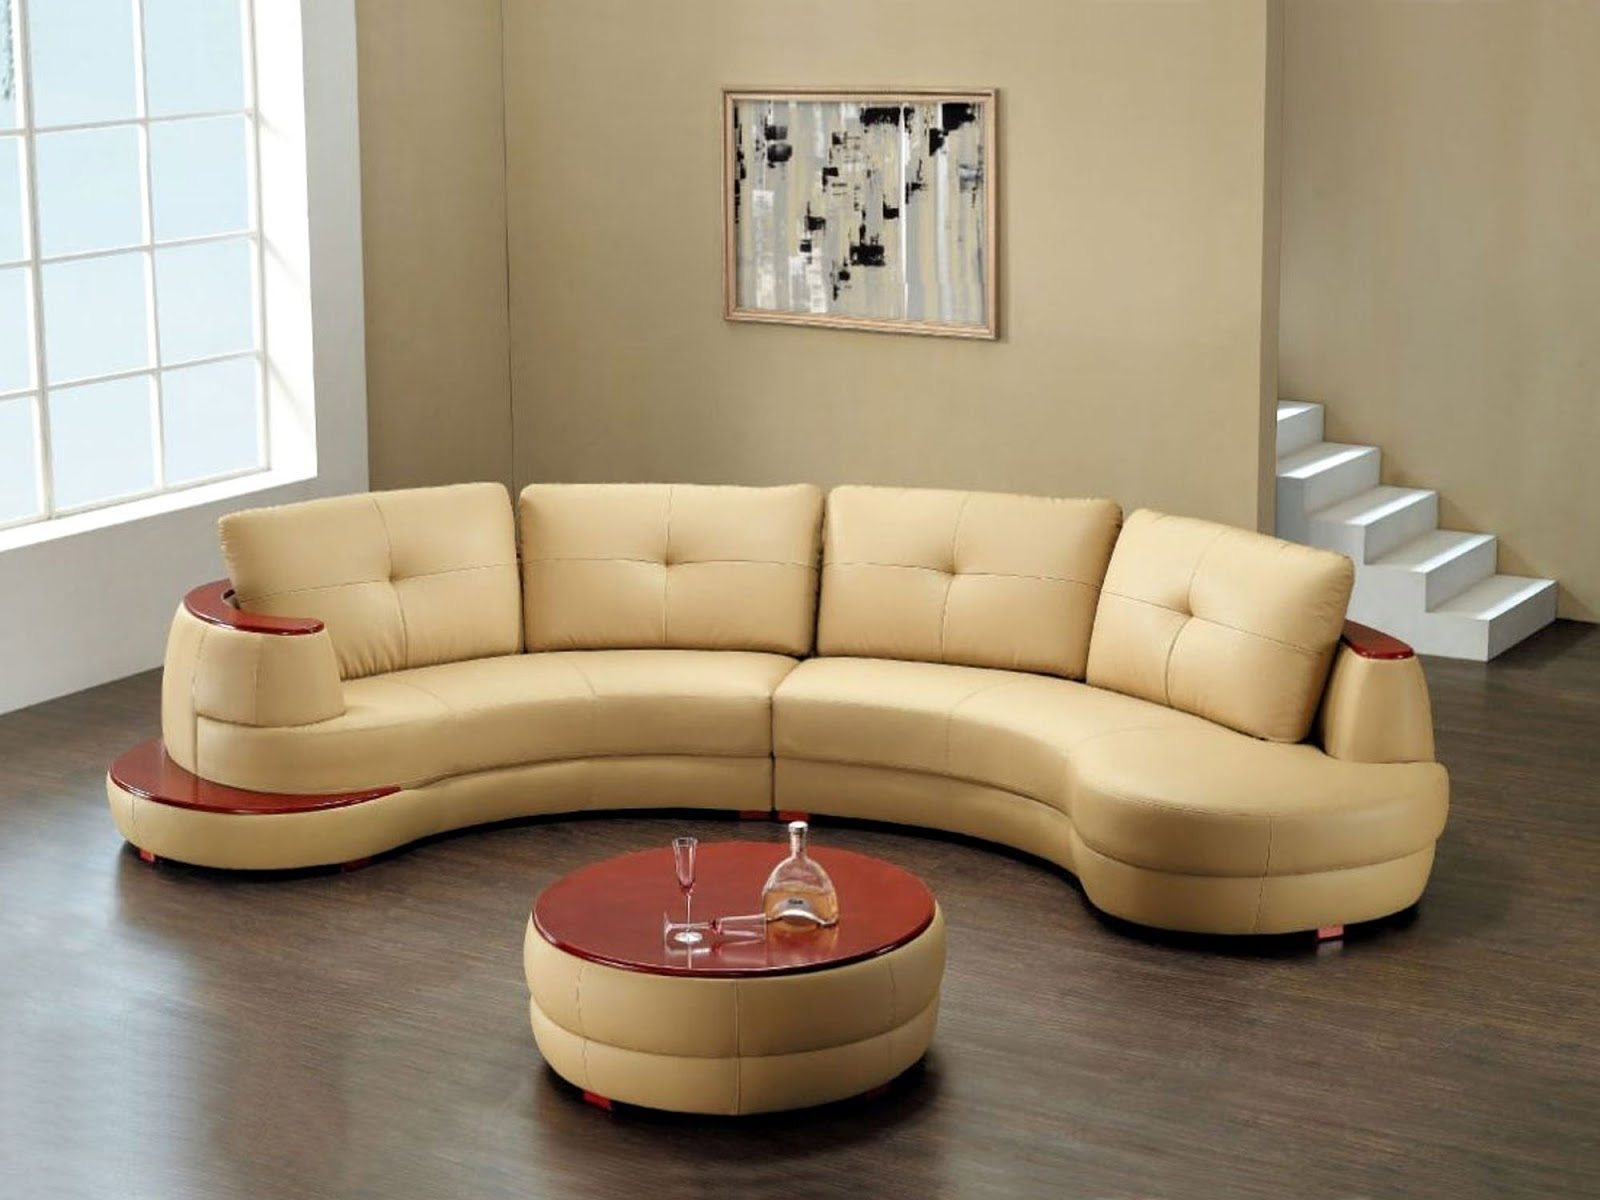 Sofa Ideas Jacksonville Fl Sectional Sofas Explore 10 of 10 Photos